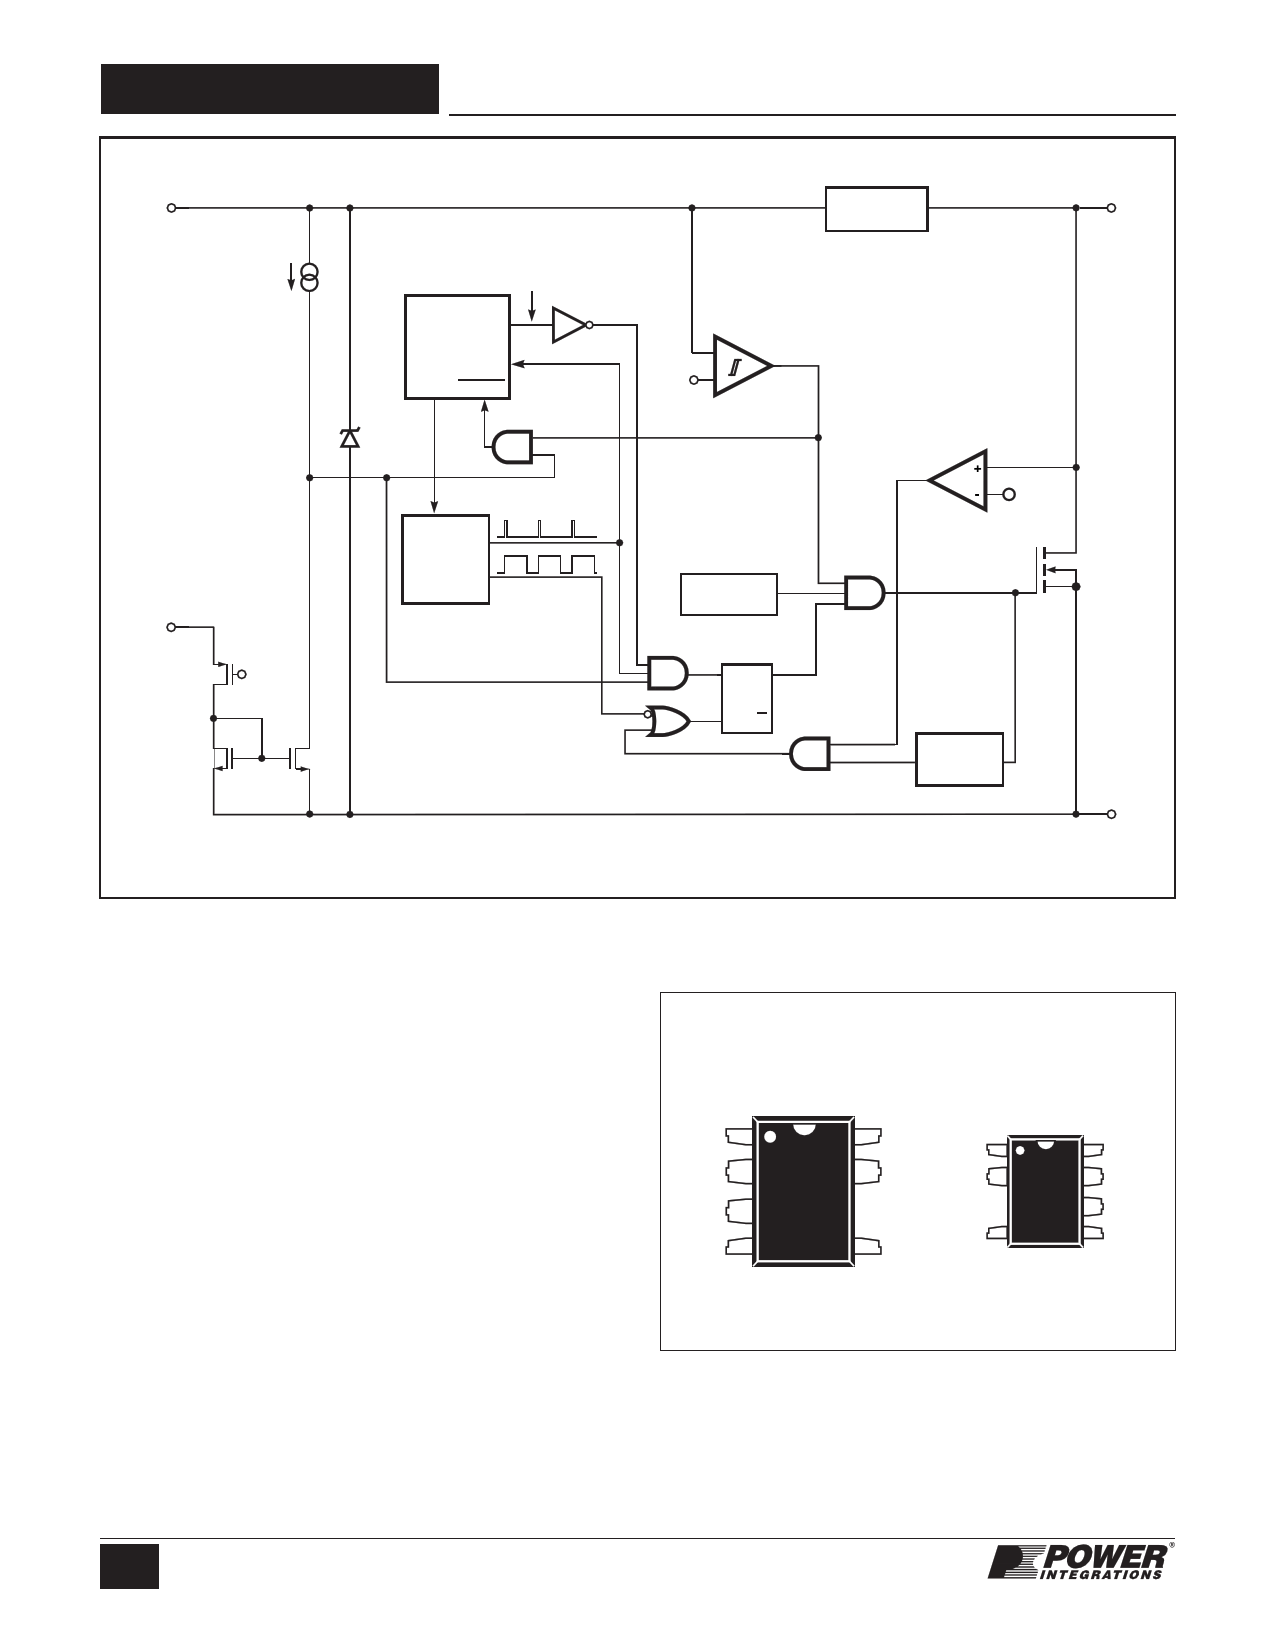 Cute Xt Power Supply Pinout Images - Simple Wiring Diagram Images ...